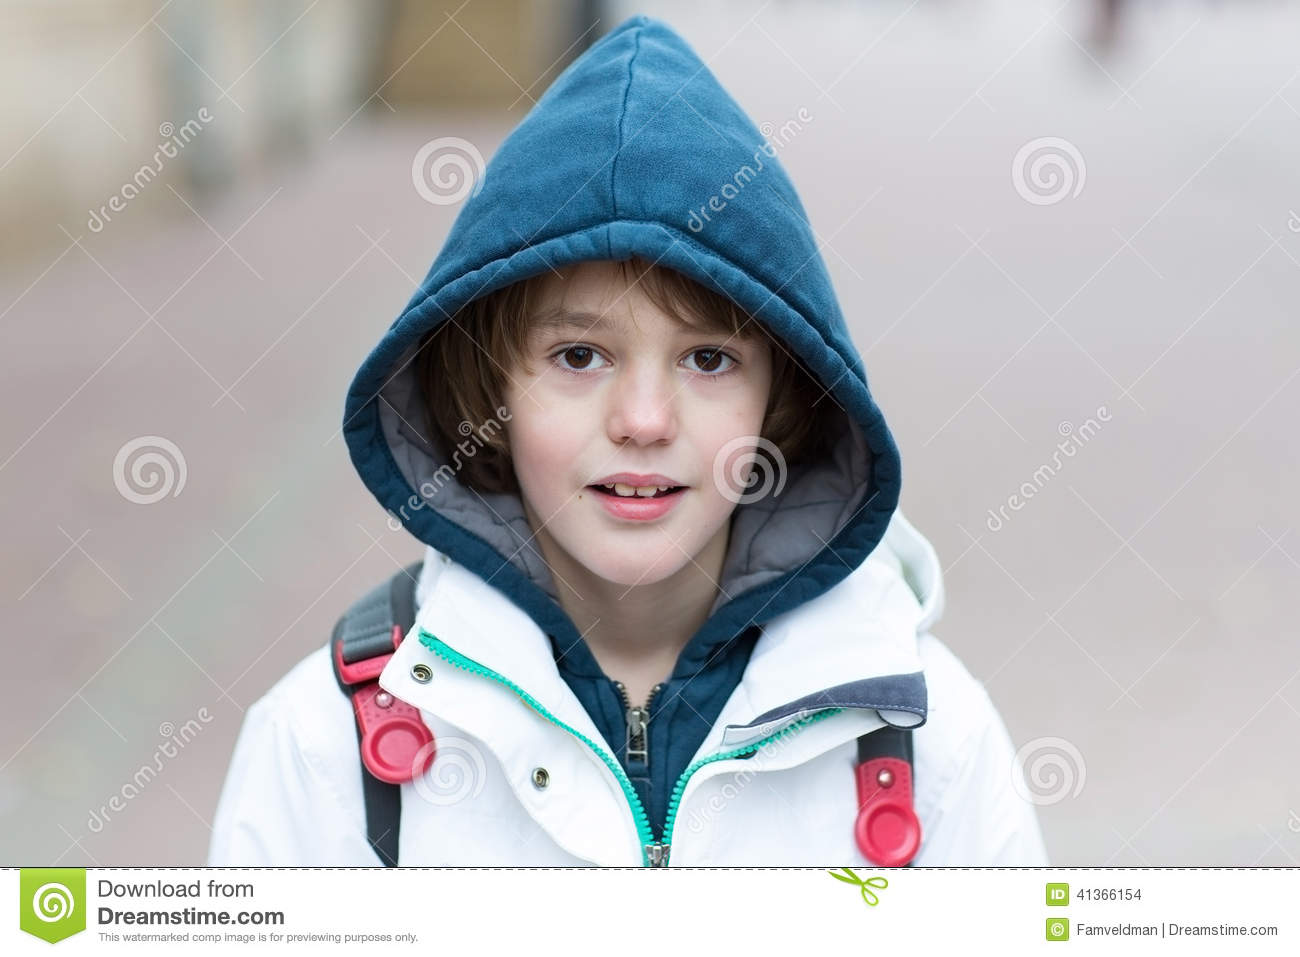 Cute boy on his way to school on a cold day